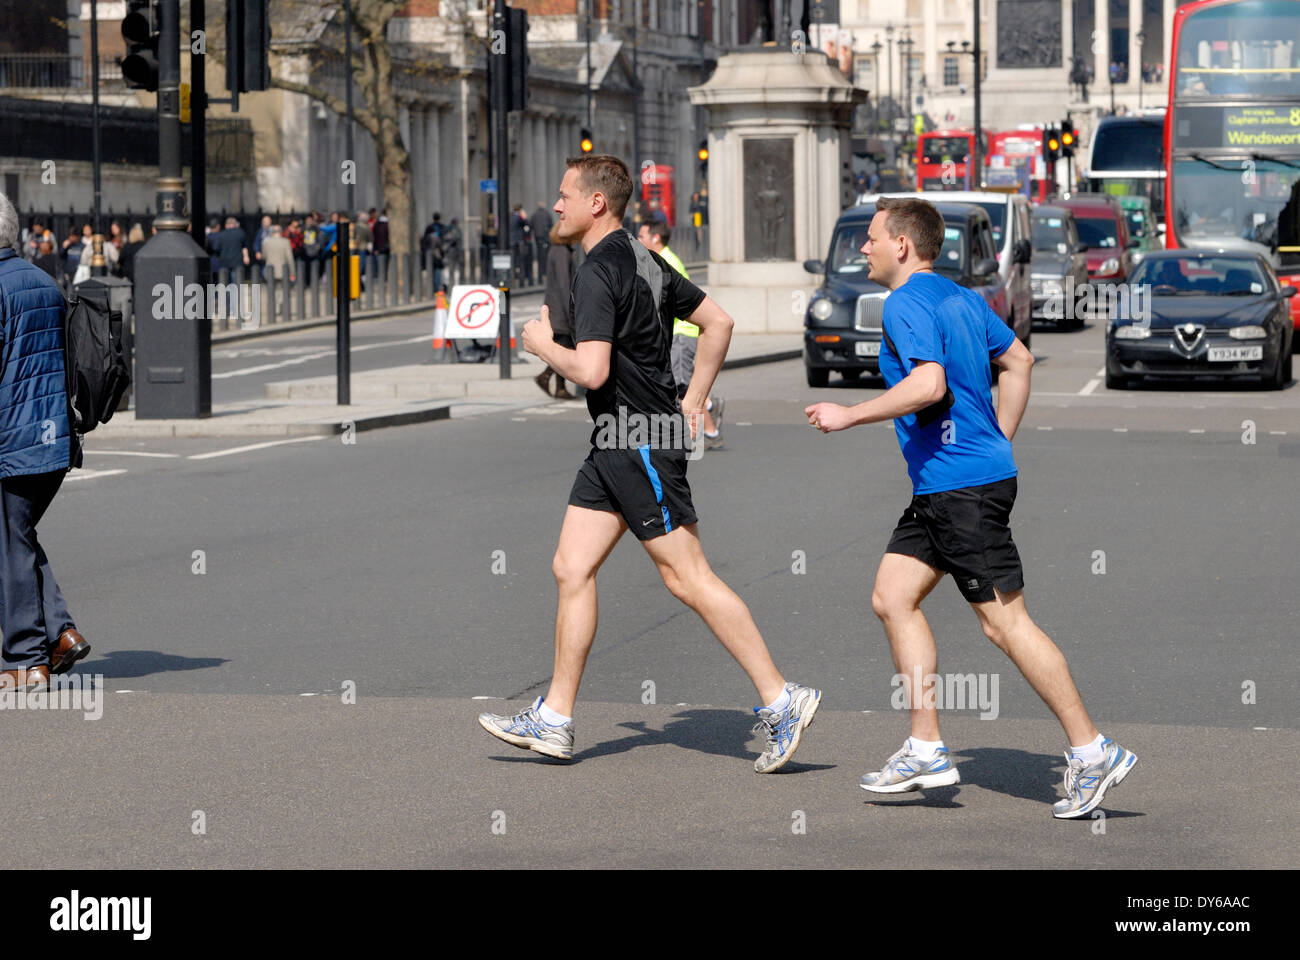 London, England, UK. Joggers in Whitehall - Stock Image